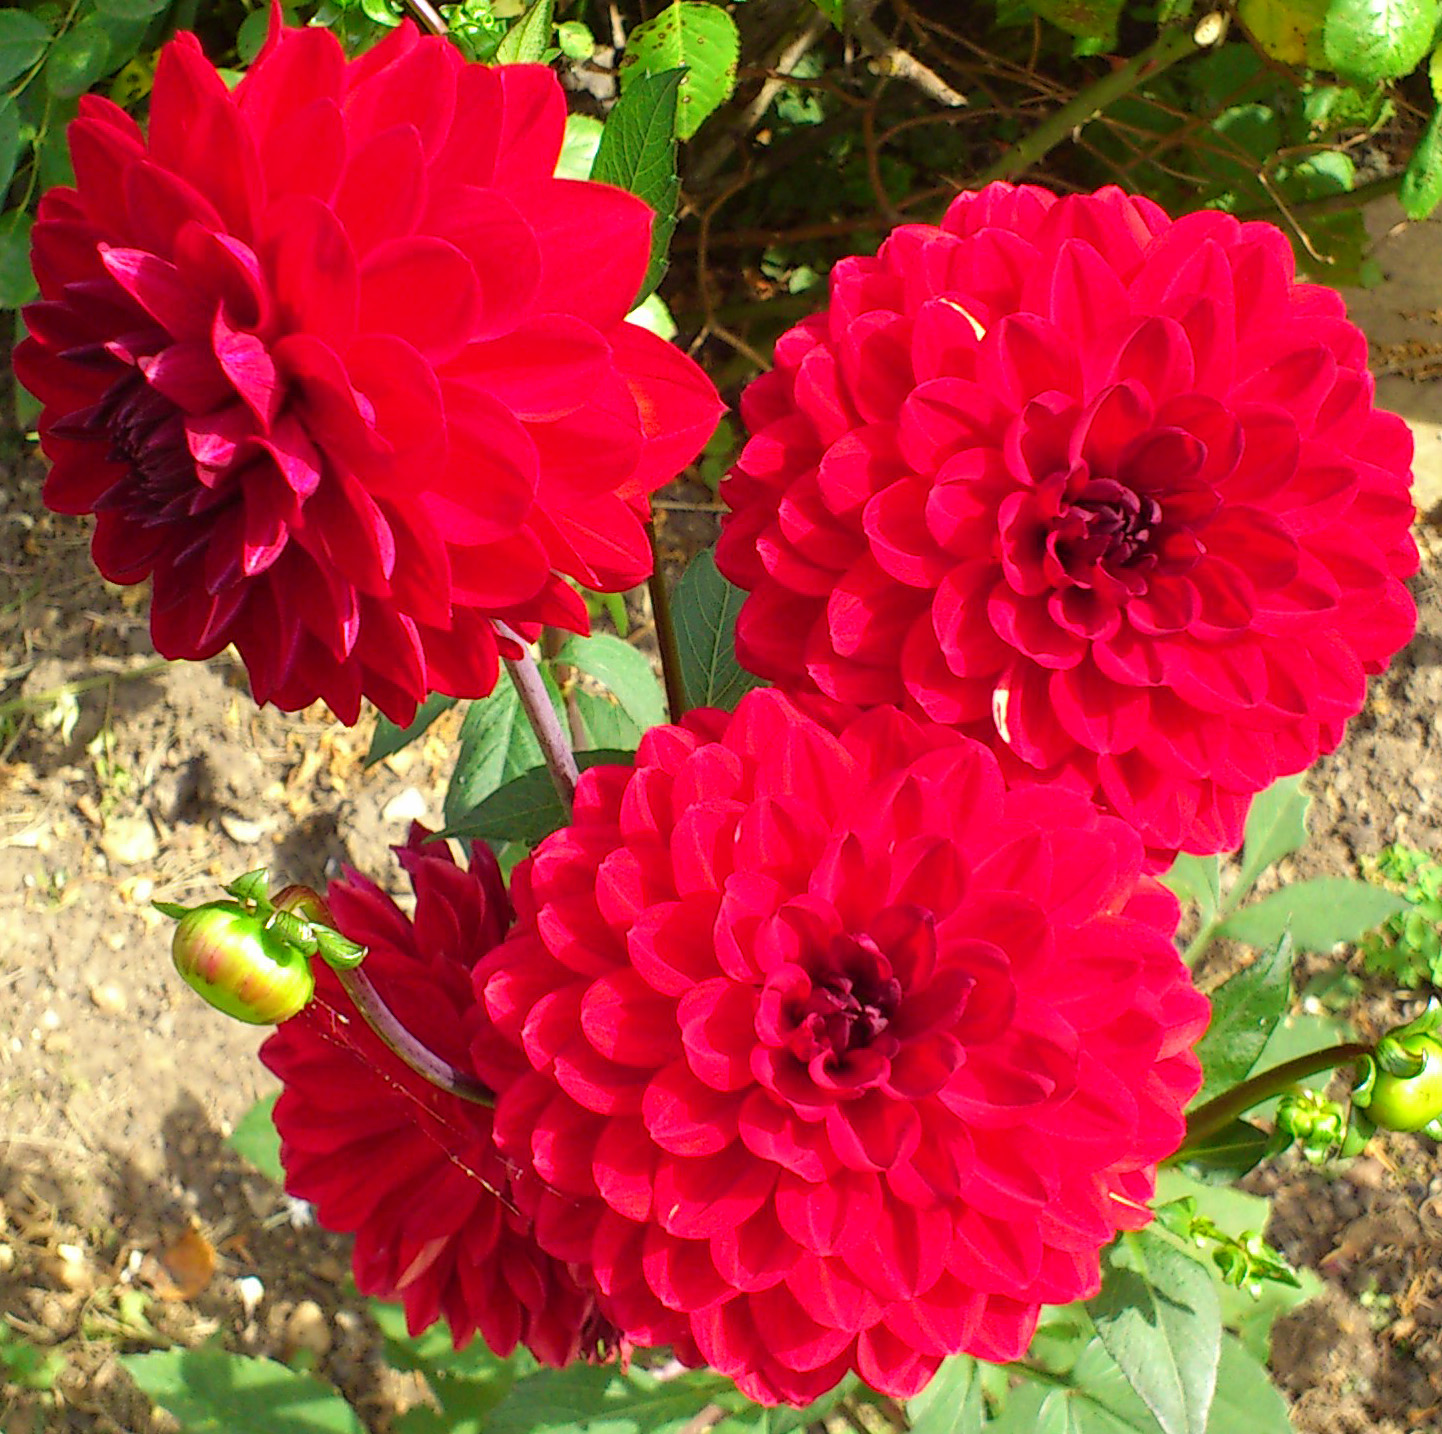 Flowers by Shamini: Not-so-flat flowers